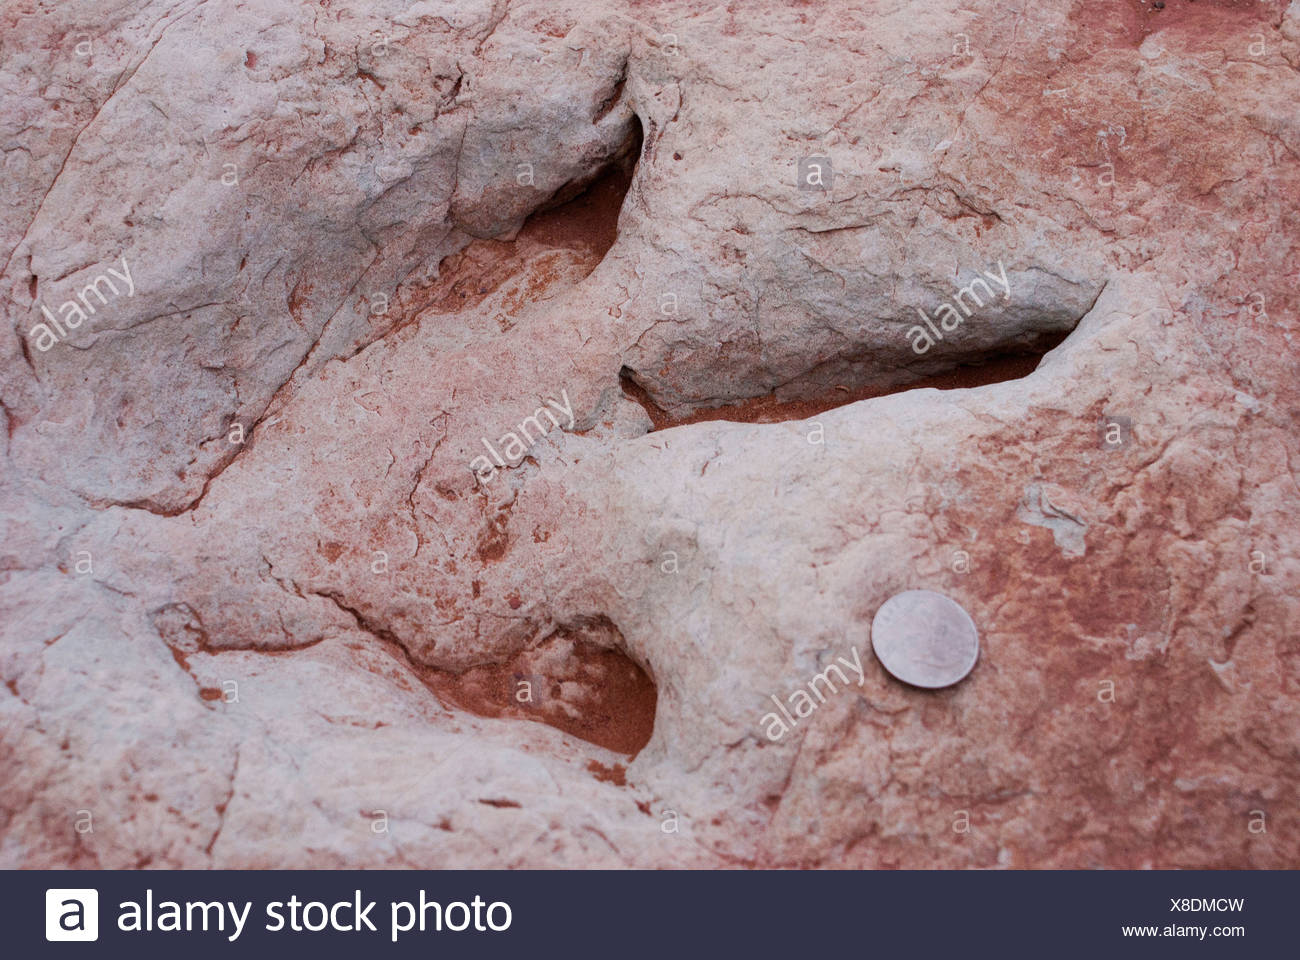 USA Arizona Dinosaur footprint preserved in former stream bed in northern Arizona - Stock Image